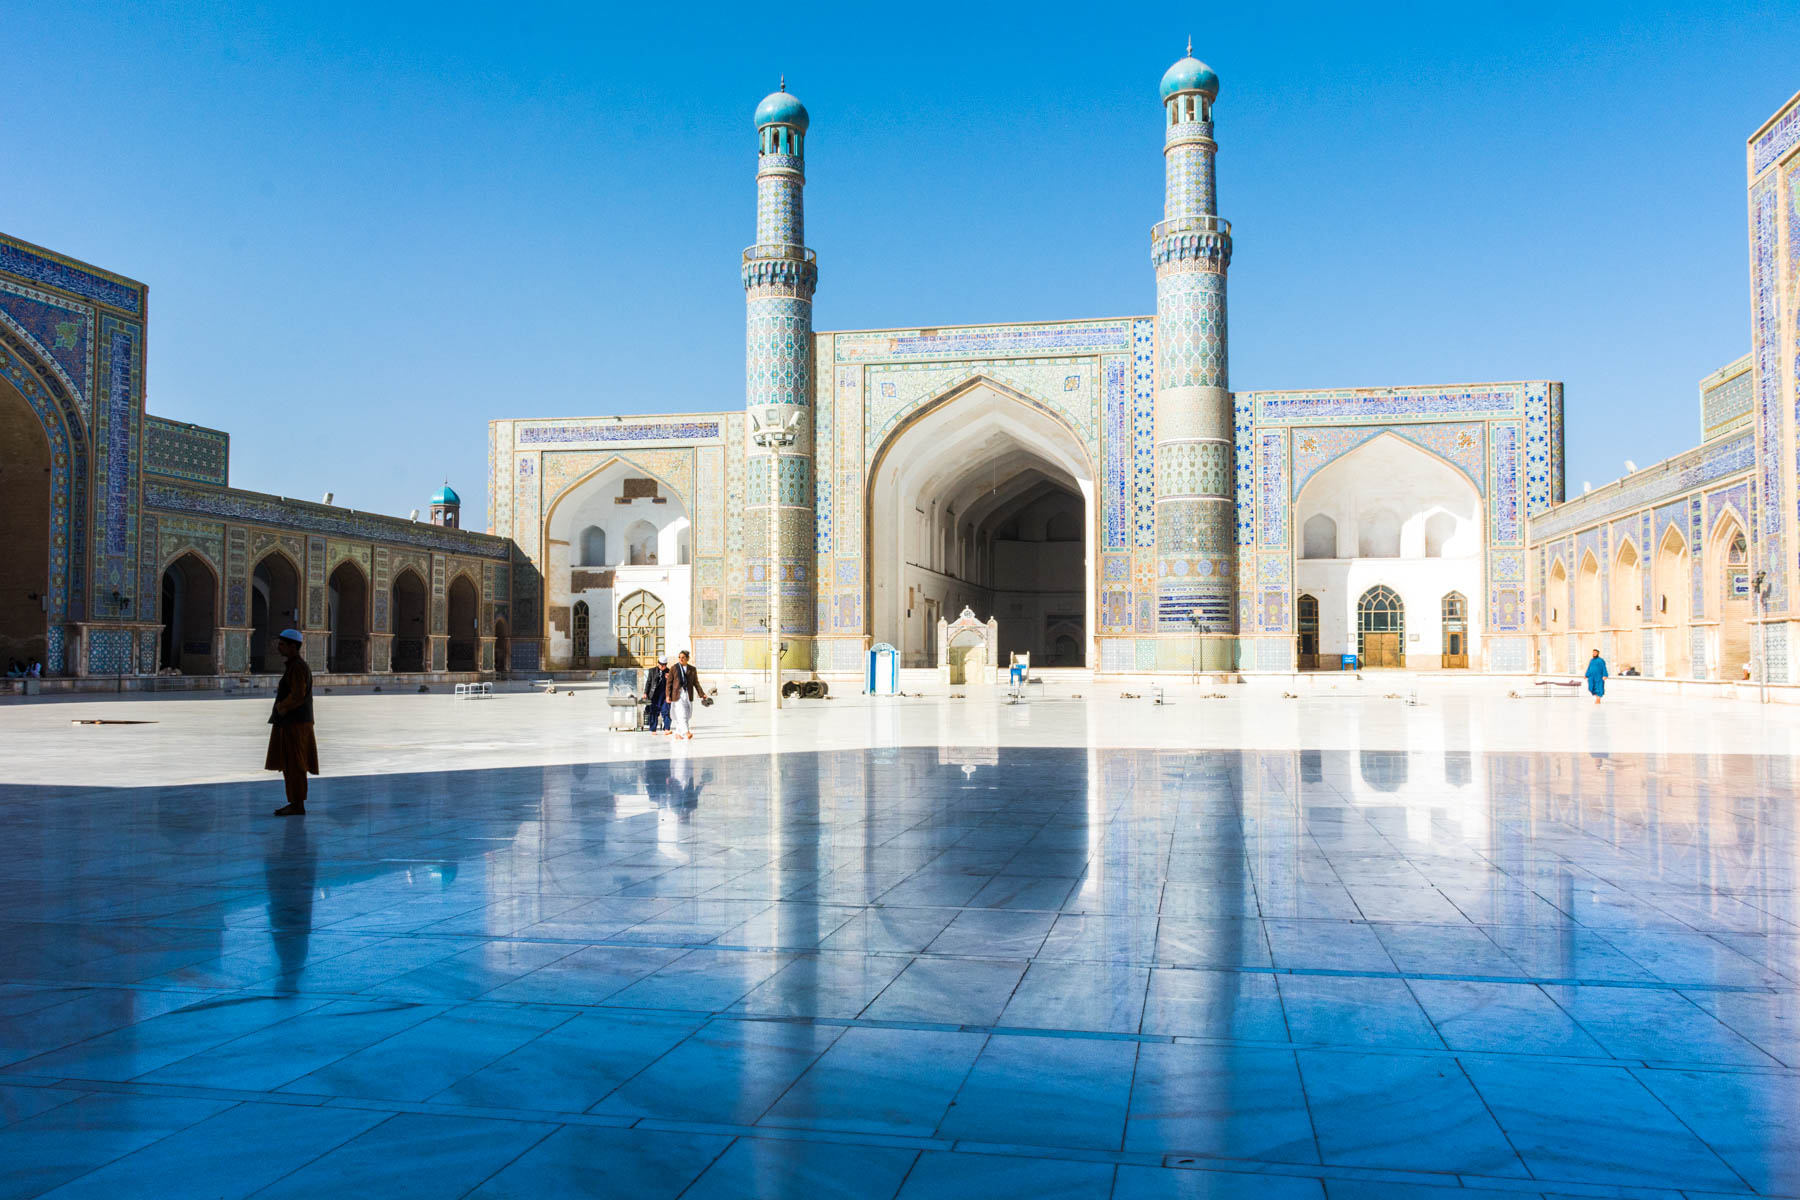 The Jome mosque of Herat, Afghanistan